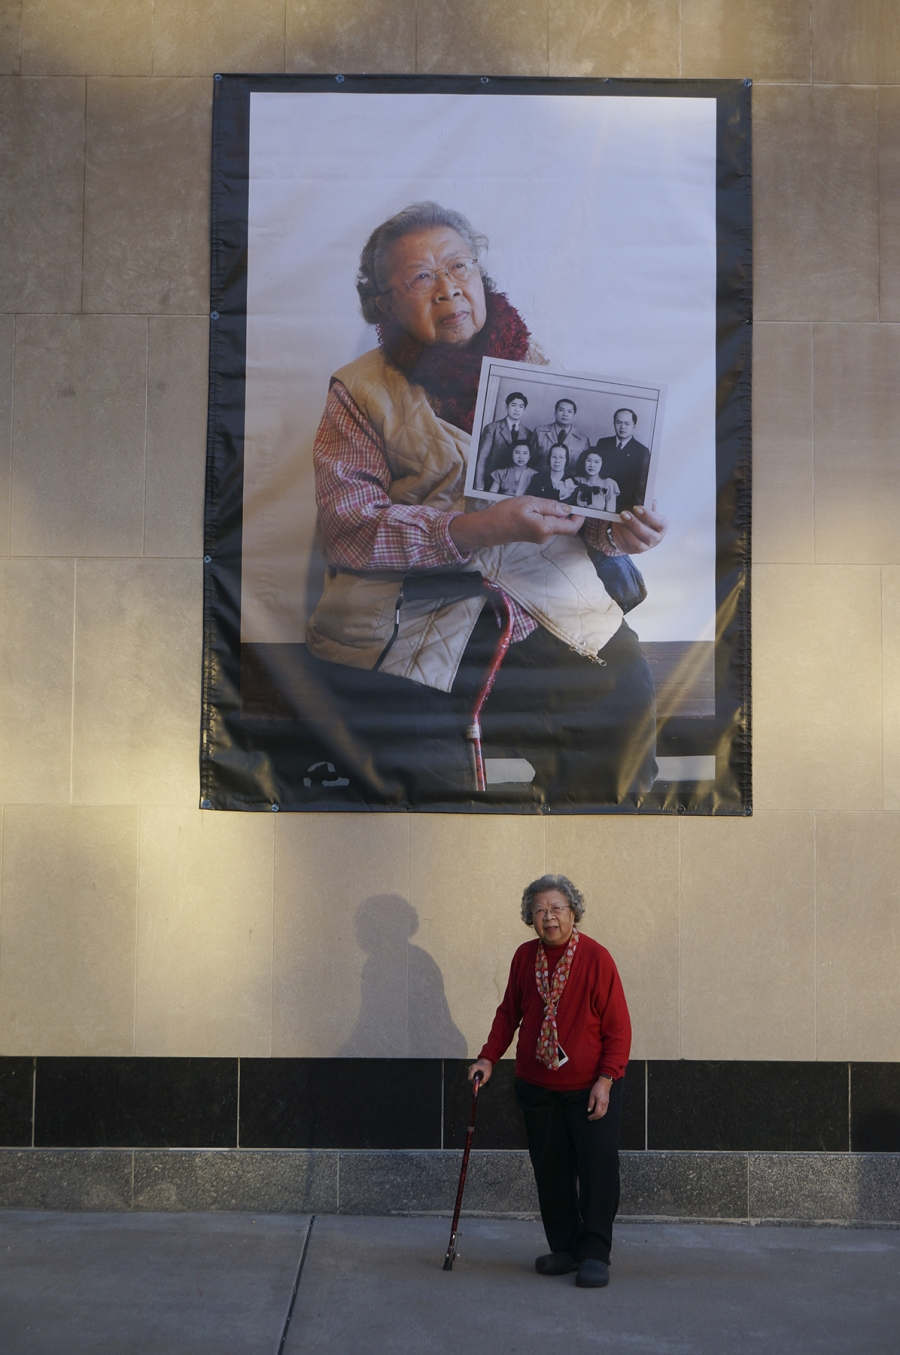 A woman stands in front of her portrait which hangs large on the side of a building